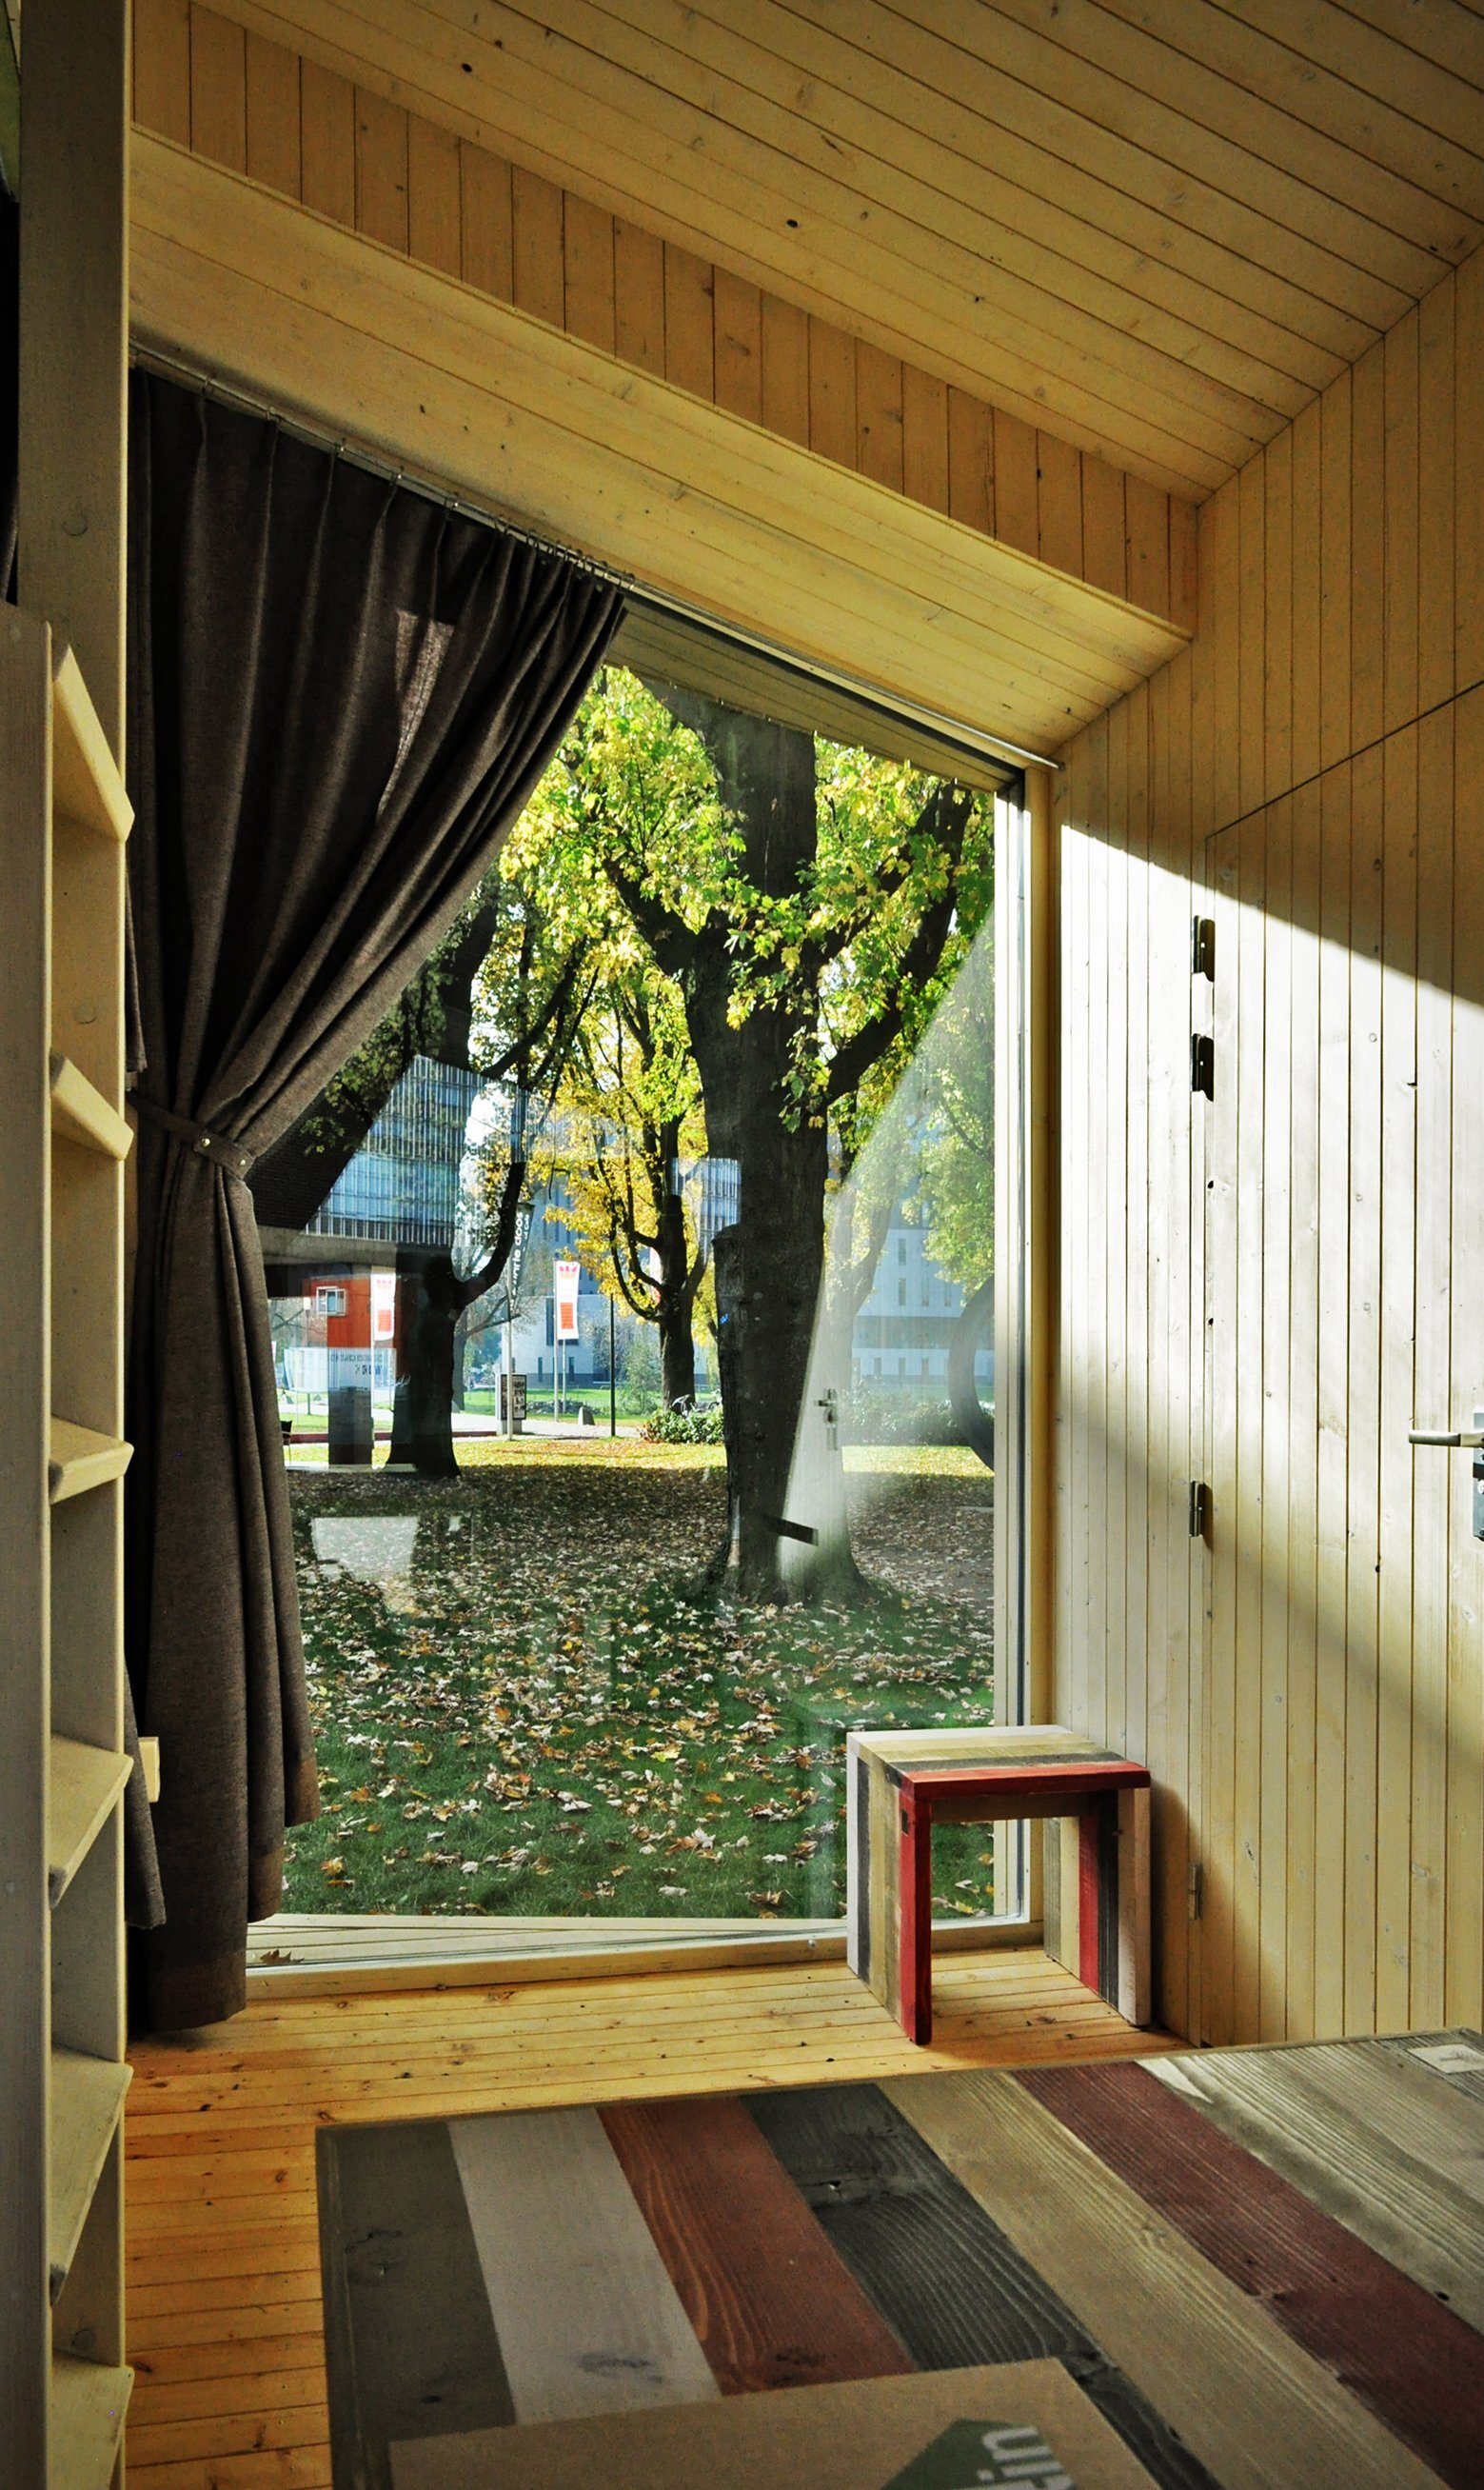 Treck-In Hickers Cabins - Small Cabin - MoodWorks Architecture - Kristel Hermans Architectuur - The Netherlands - Window View - Humble Homes